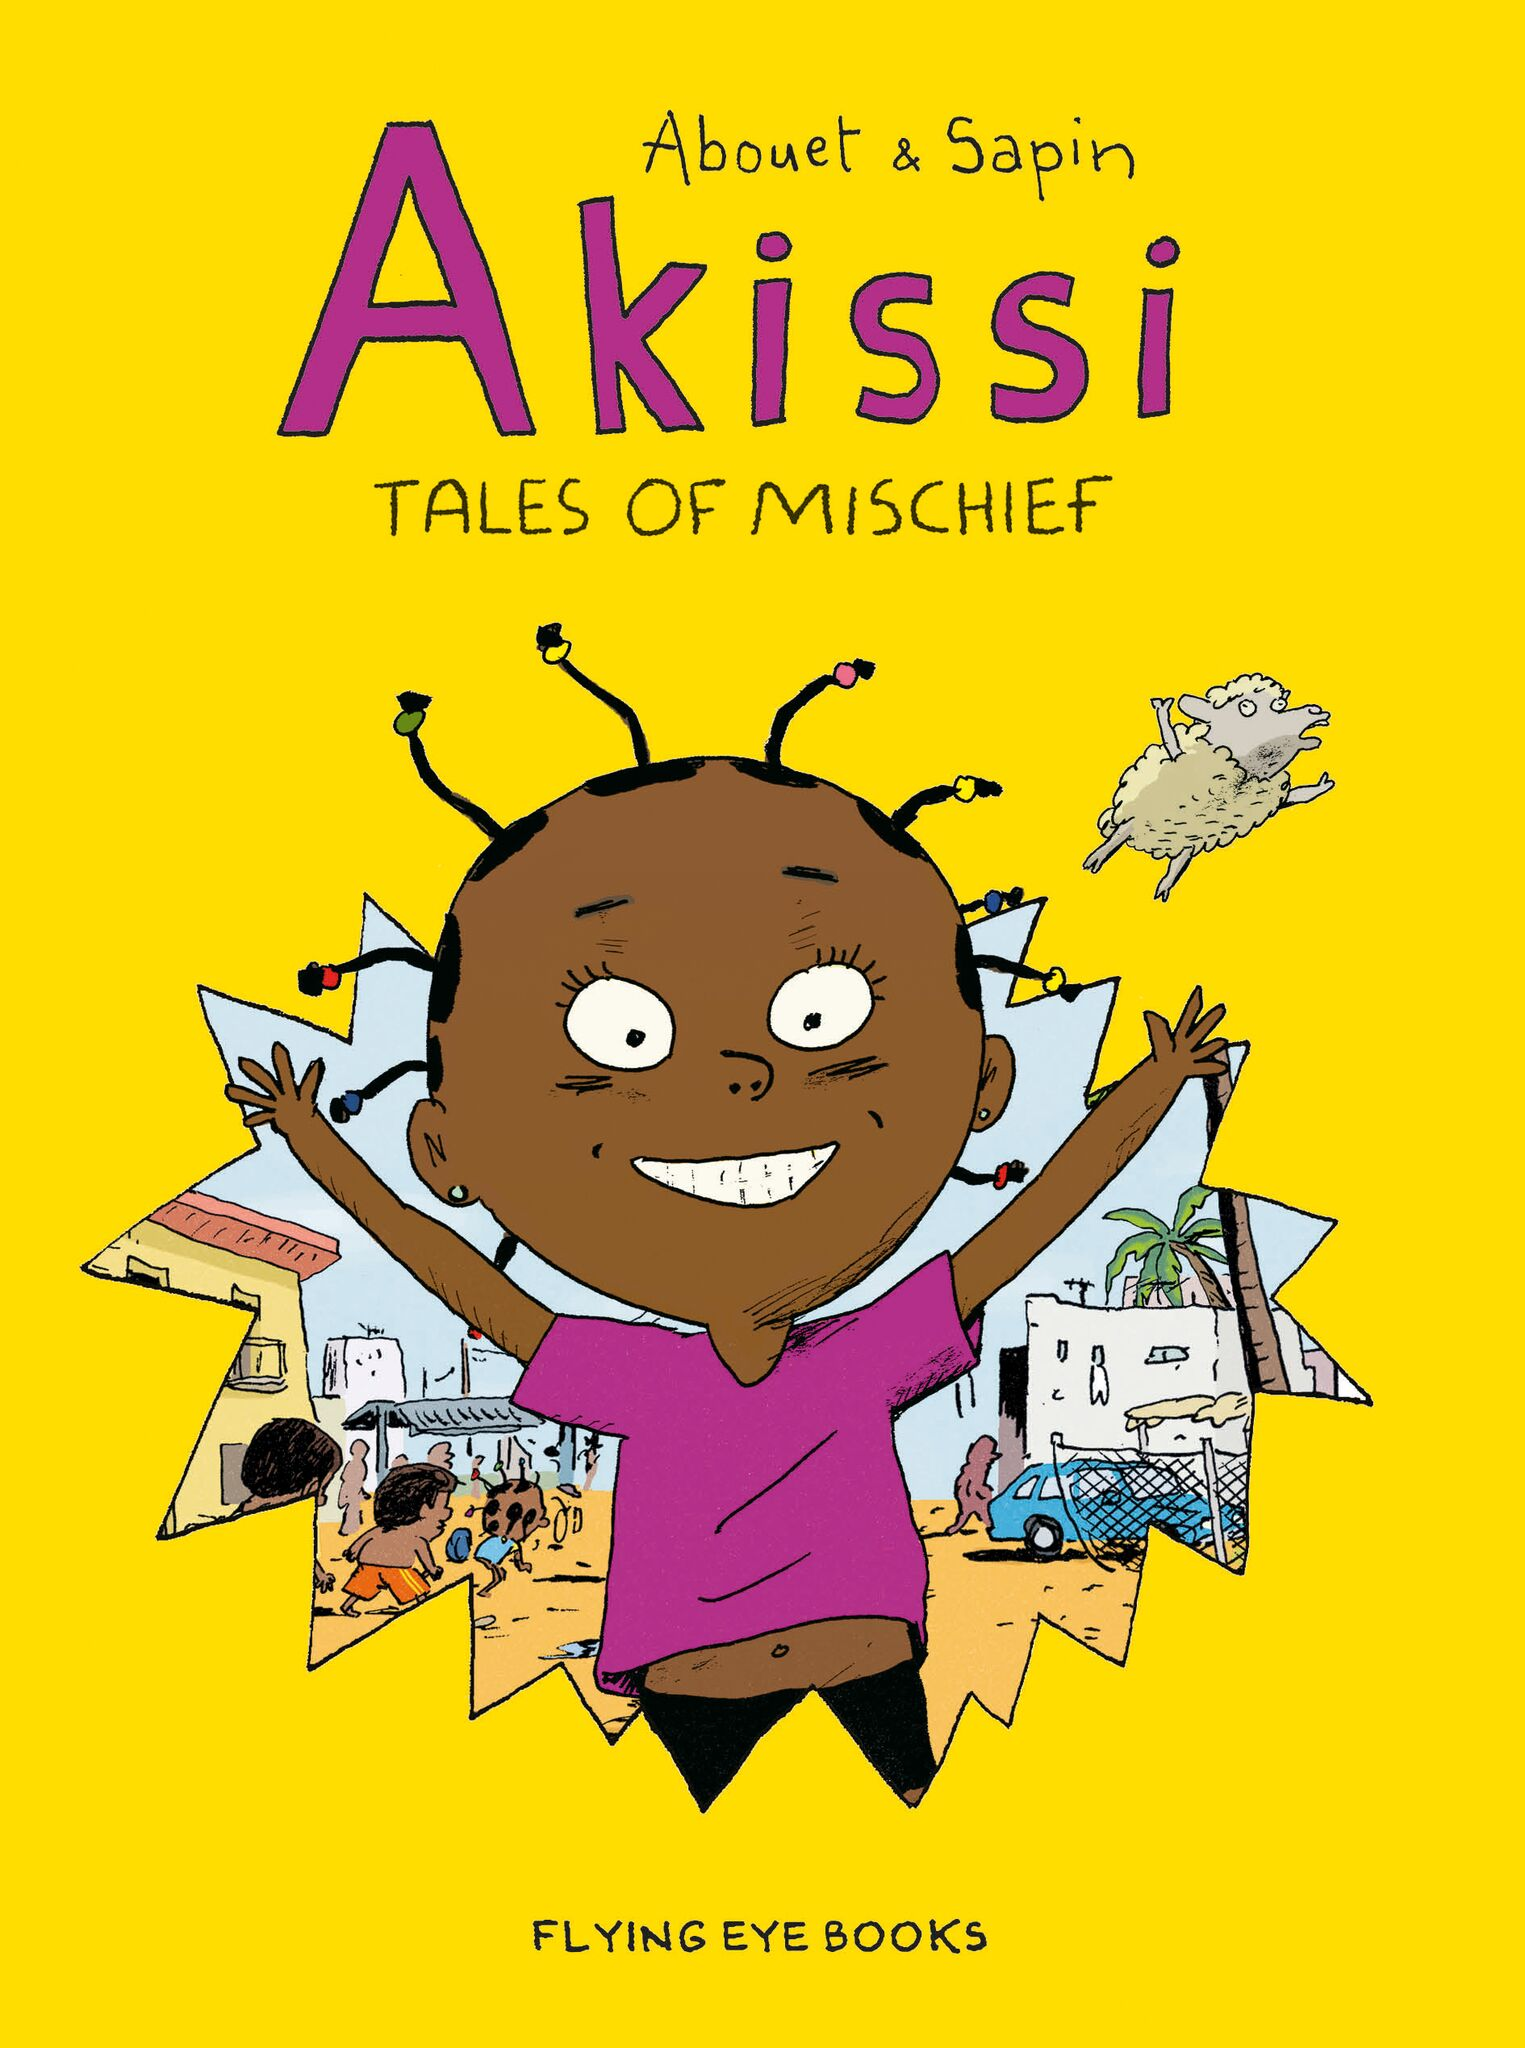 Akissi by Marguerite Abouet | SLJ Review